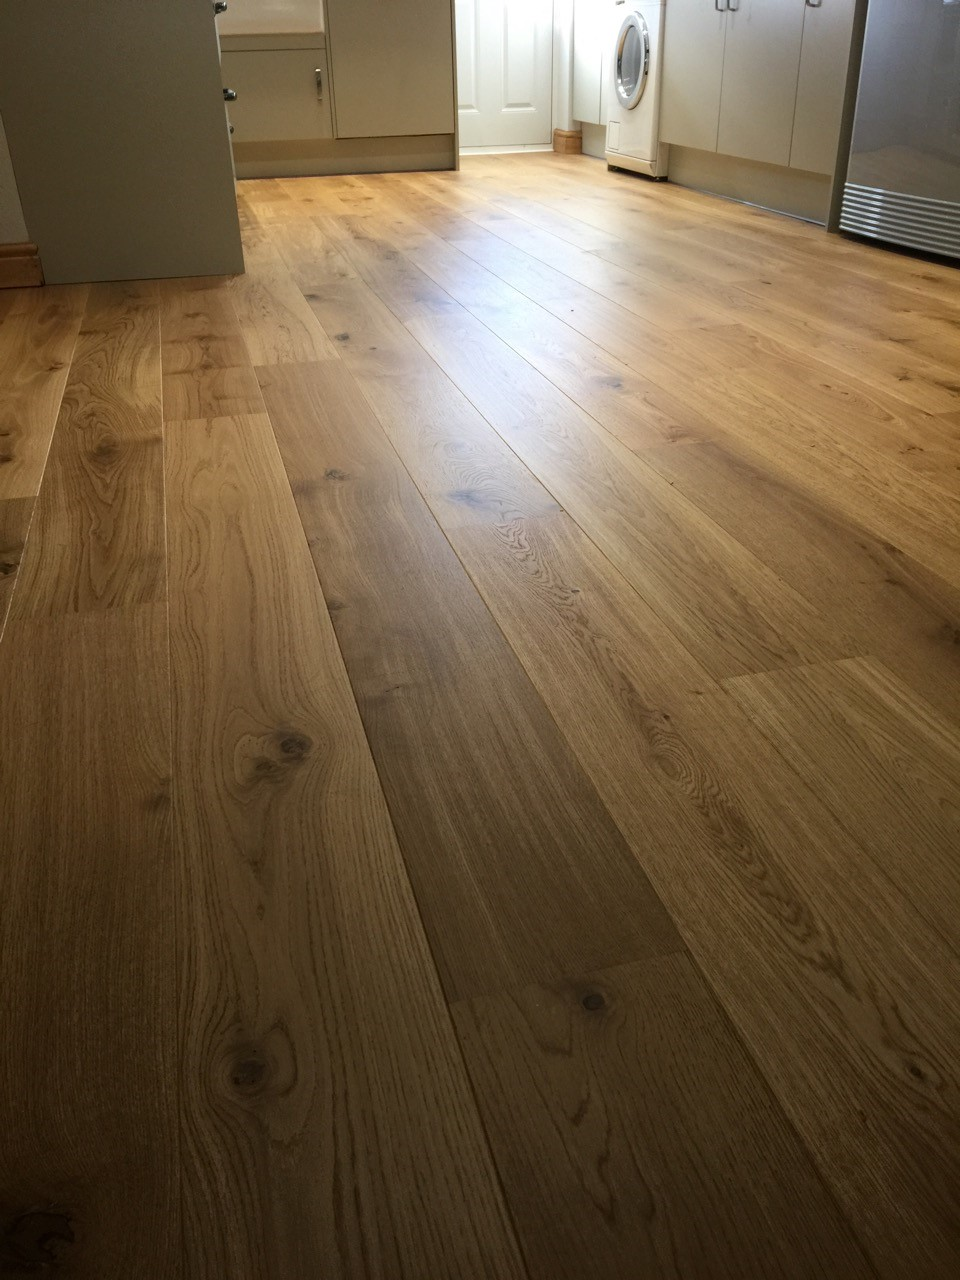 Quick-Step Palazzo 1338 natural heritage oak installed to a home in Lymm